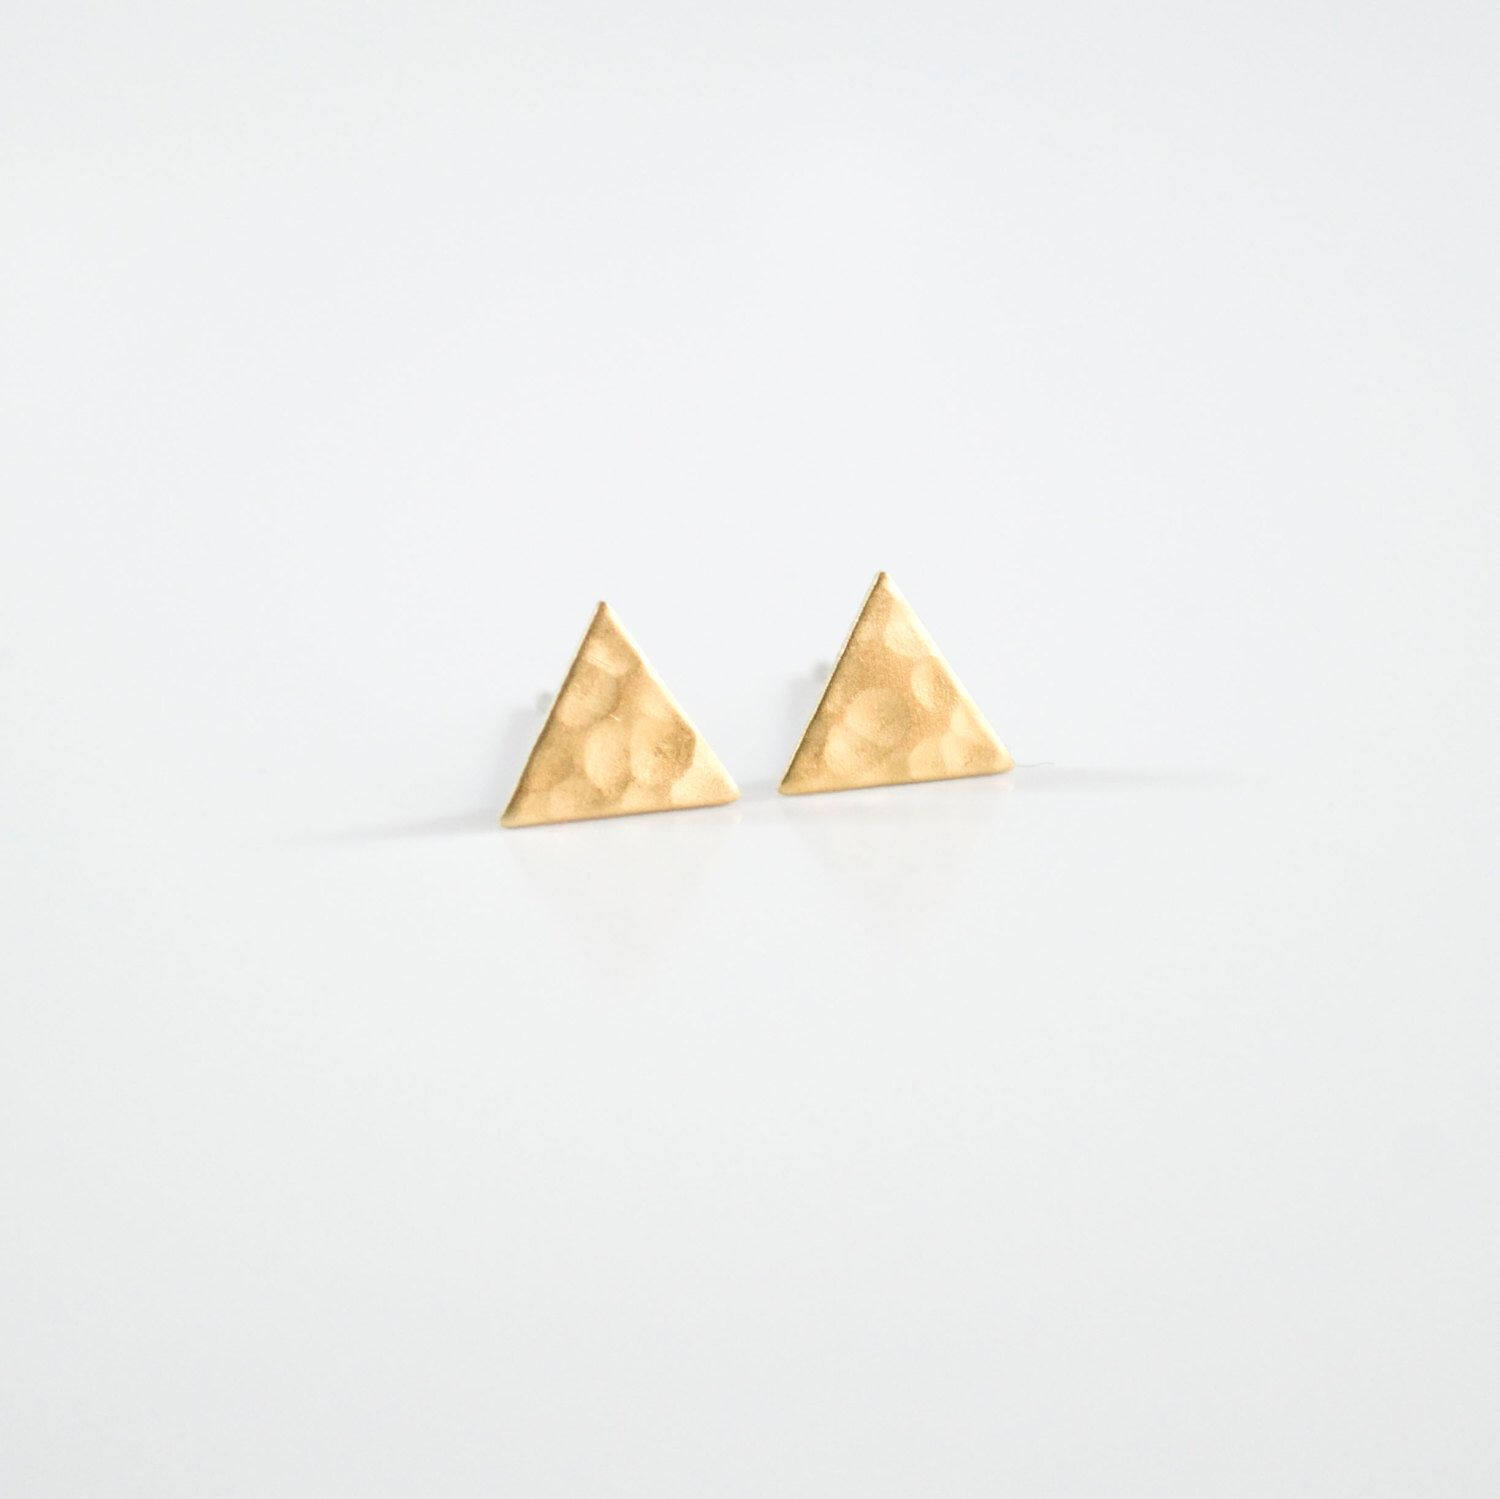 Triangle Earrings Stud Hypoallergenic Studs Gold